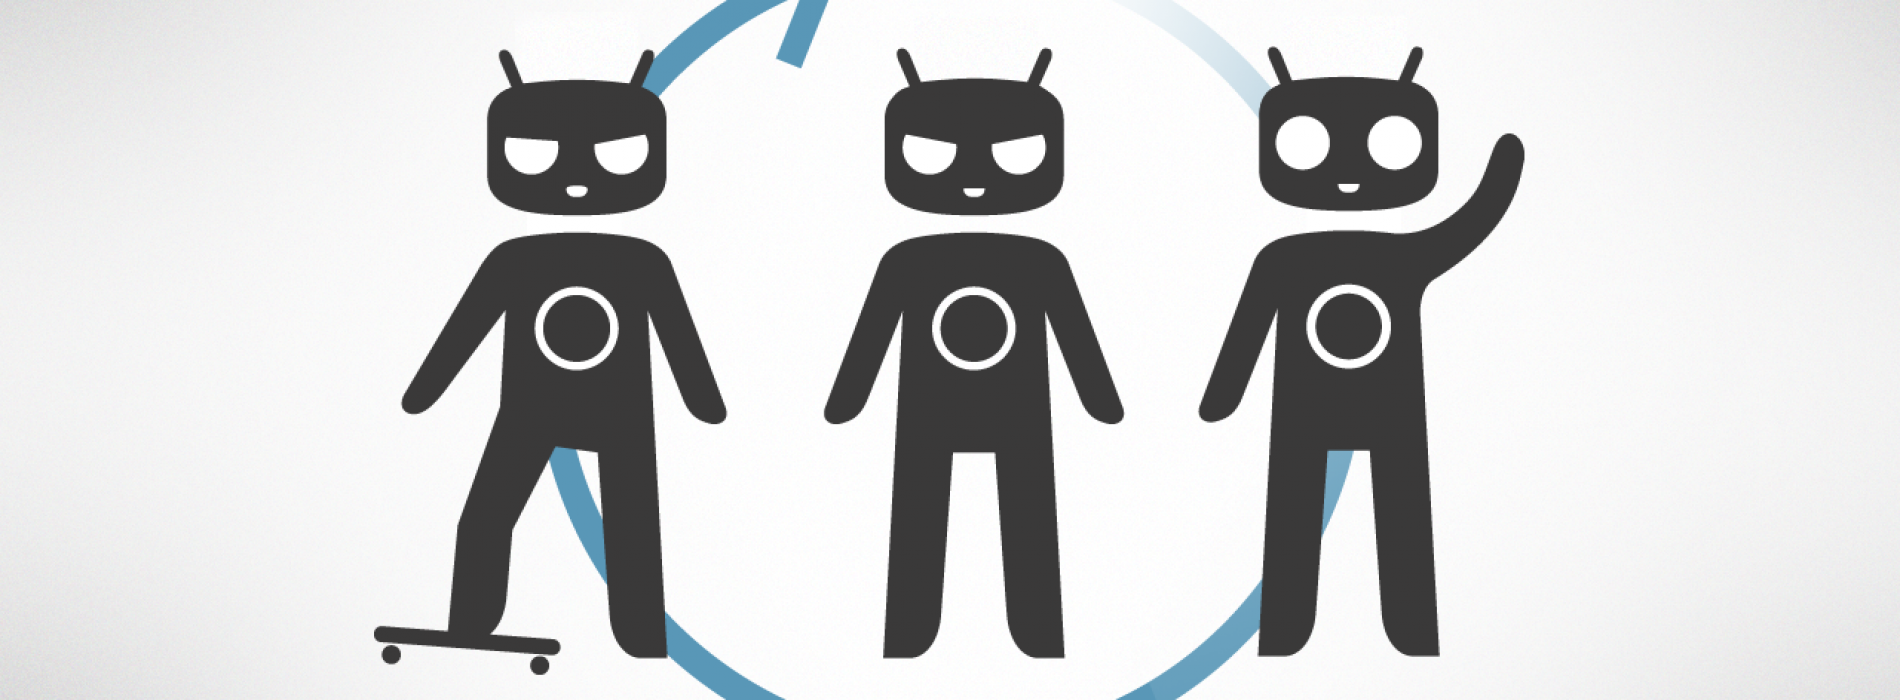 CyanogenMod 10.1 RC5 out now